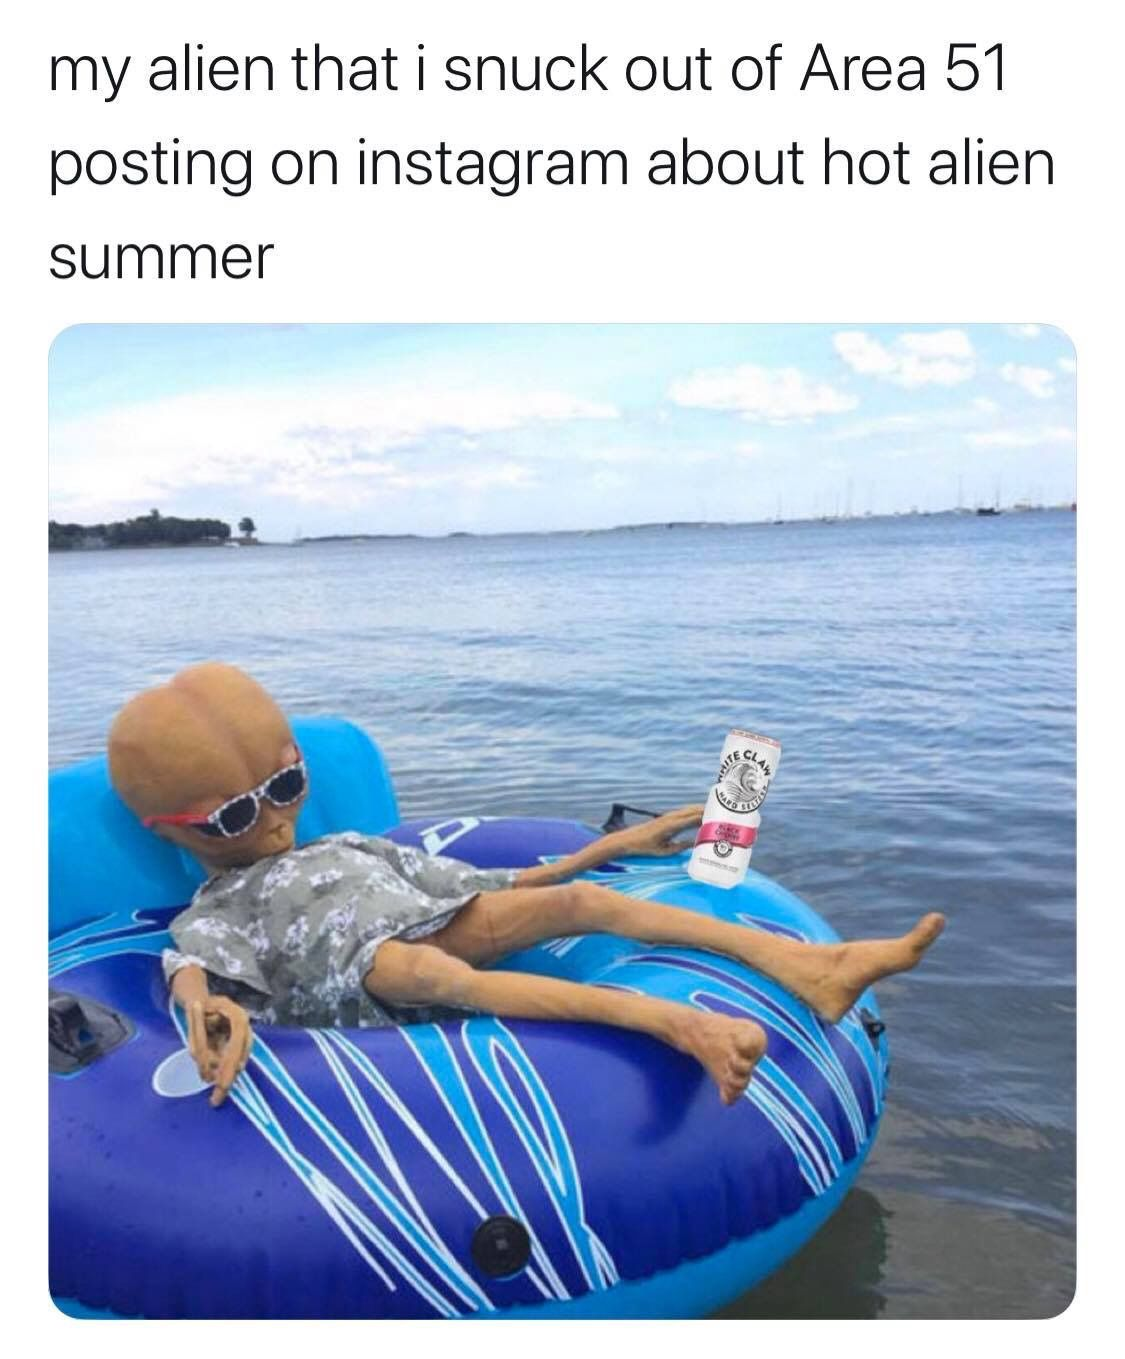 Image may contain: Area 51 memes, Area 51, meme, reaction, twitter, Las Vegas, Nevada, where, origin, explained, what is Area 51, alien, storm, facebook, event, Outdoors, Inflatable, Tubing, Accessories, Accessory, Sunglasses, Clothing, Apparel, Human, Person, Water